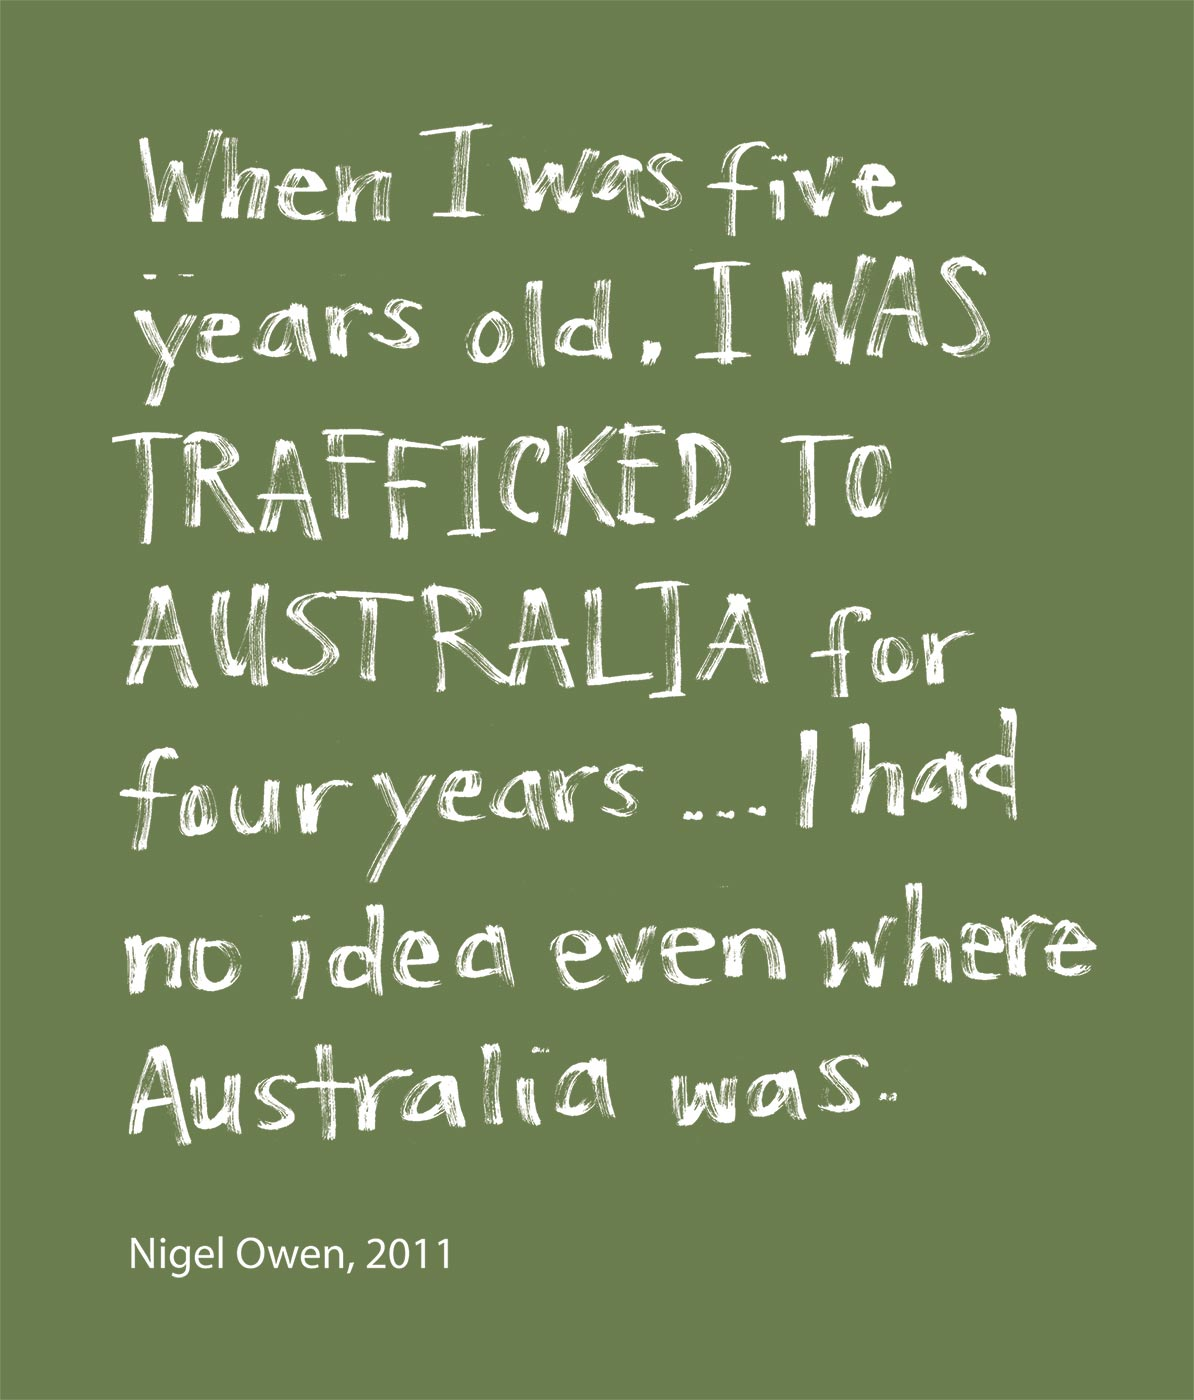 Exhibition graphic panel that reads: 'When I was five years old, I was trafficked to Australia for four years along with my brother and sister. I had no idea even where Australia was', attributed to 'Nigel Owen, 2011'. - click to view larger image